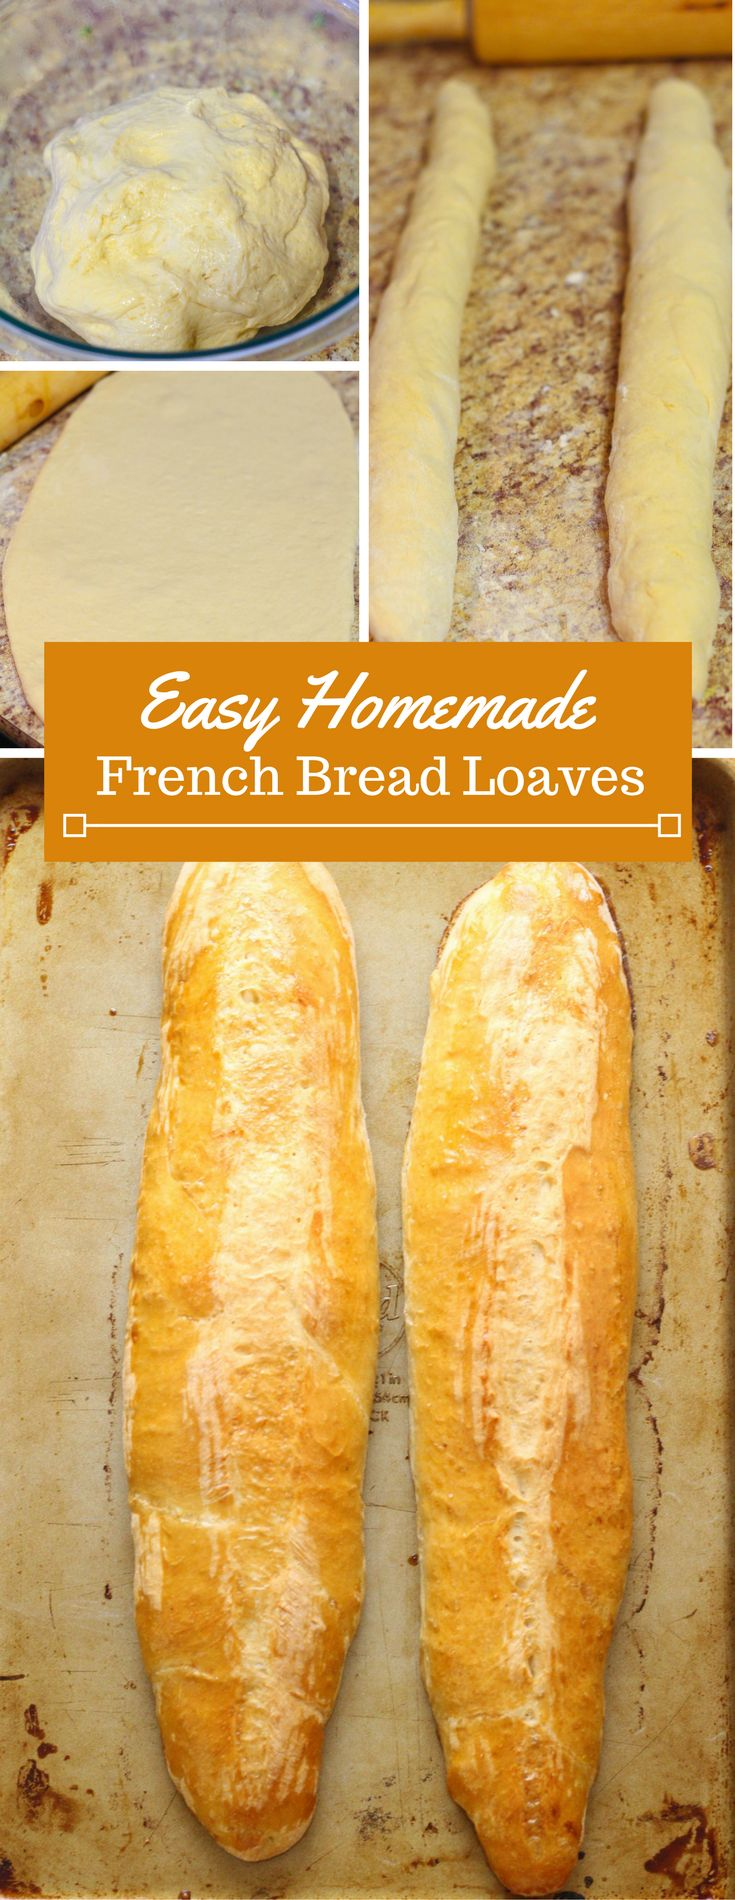 Fresh baked bread | Homemade bread | French bread | Easy baking recipe